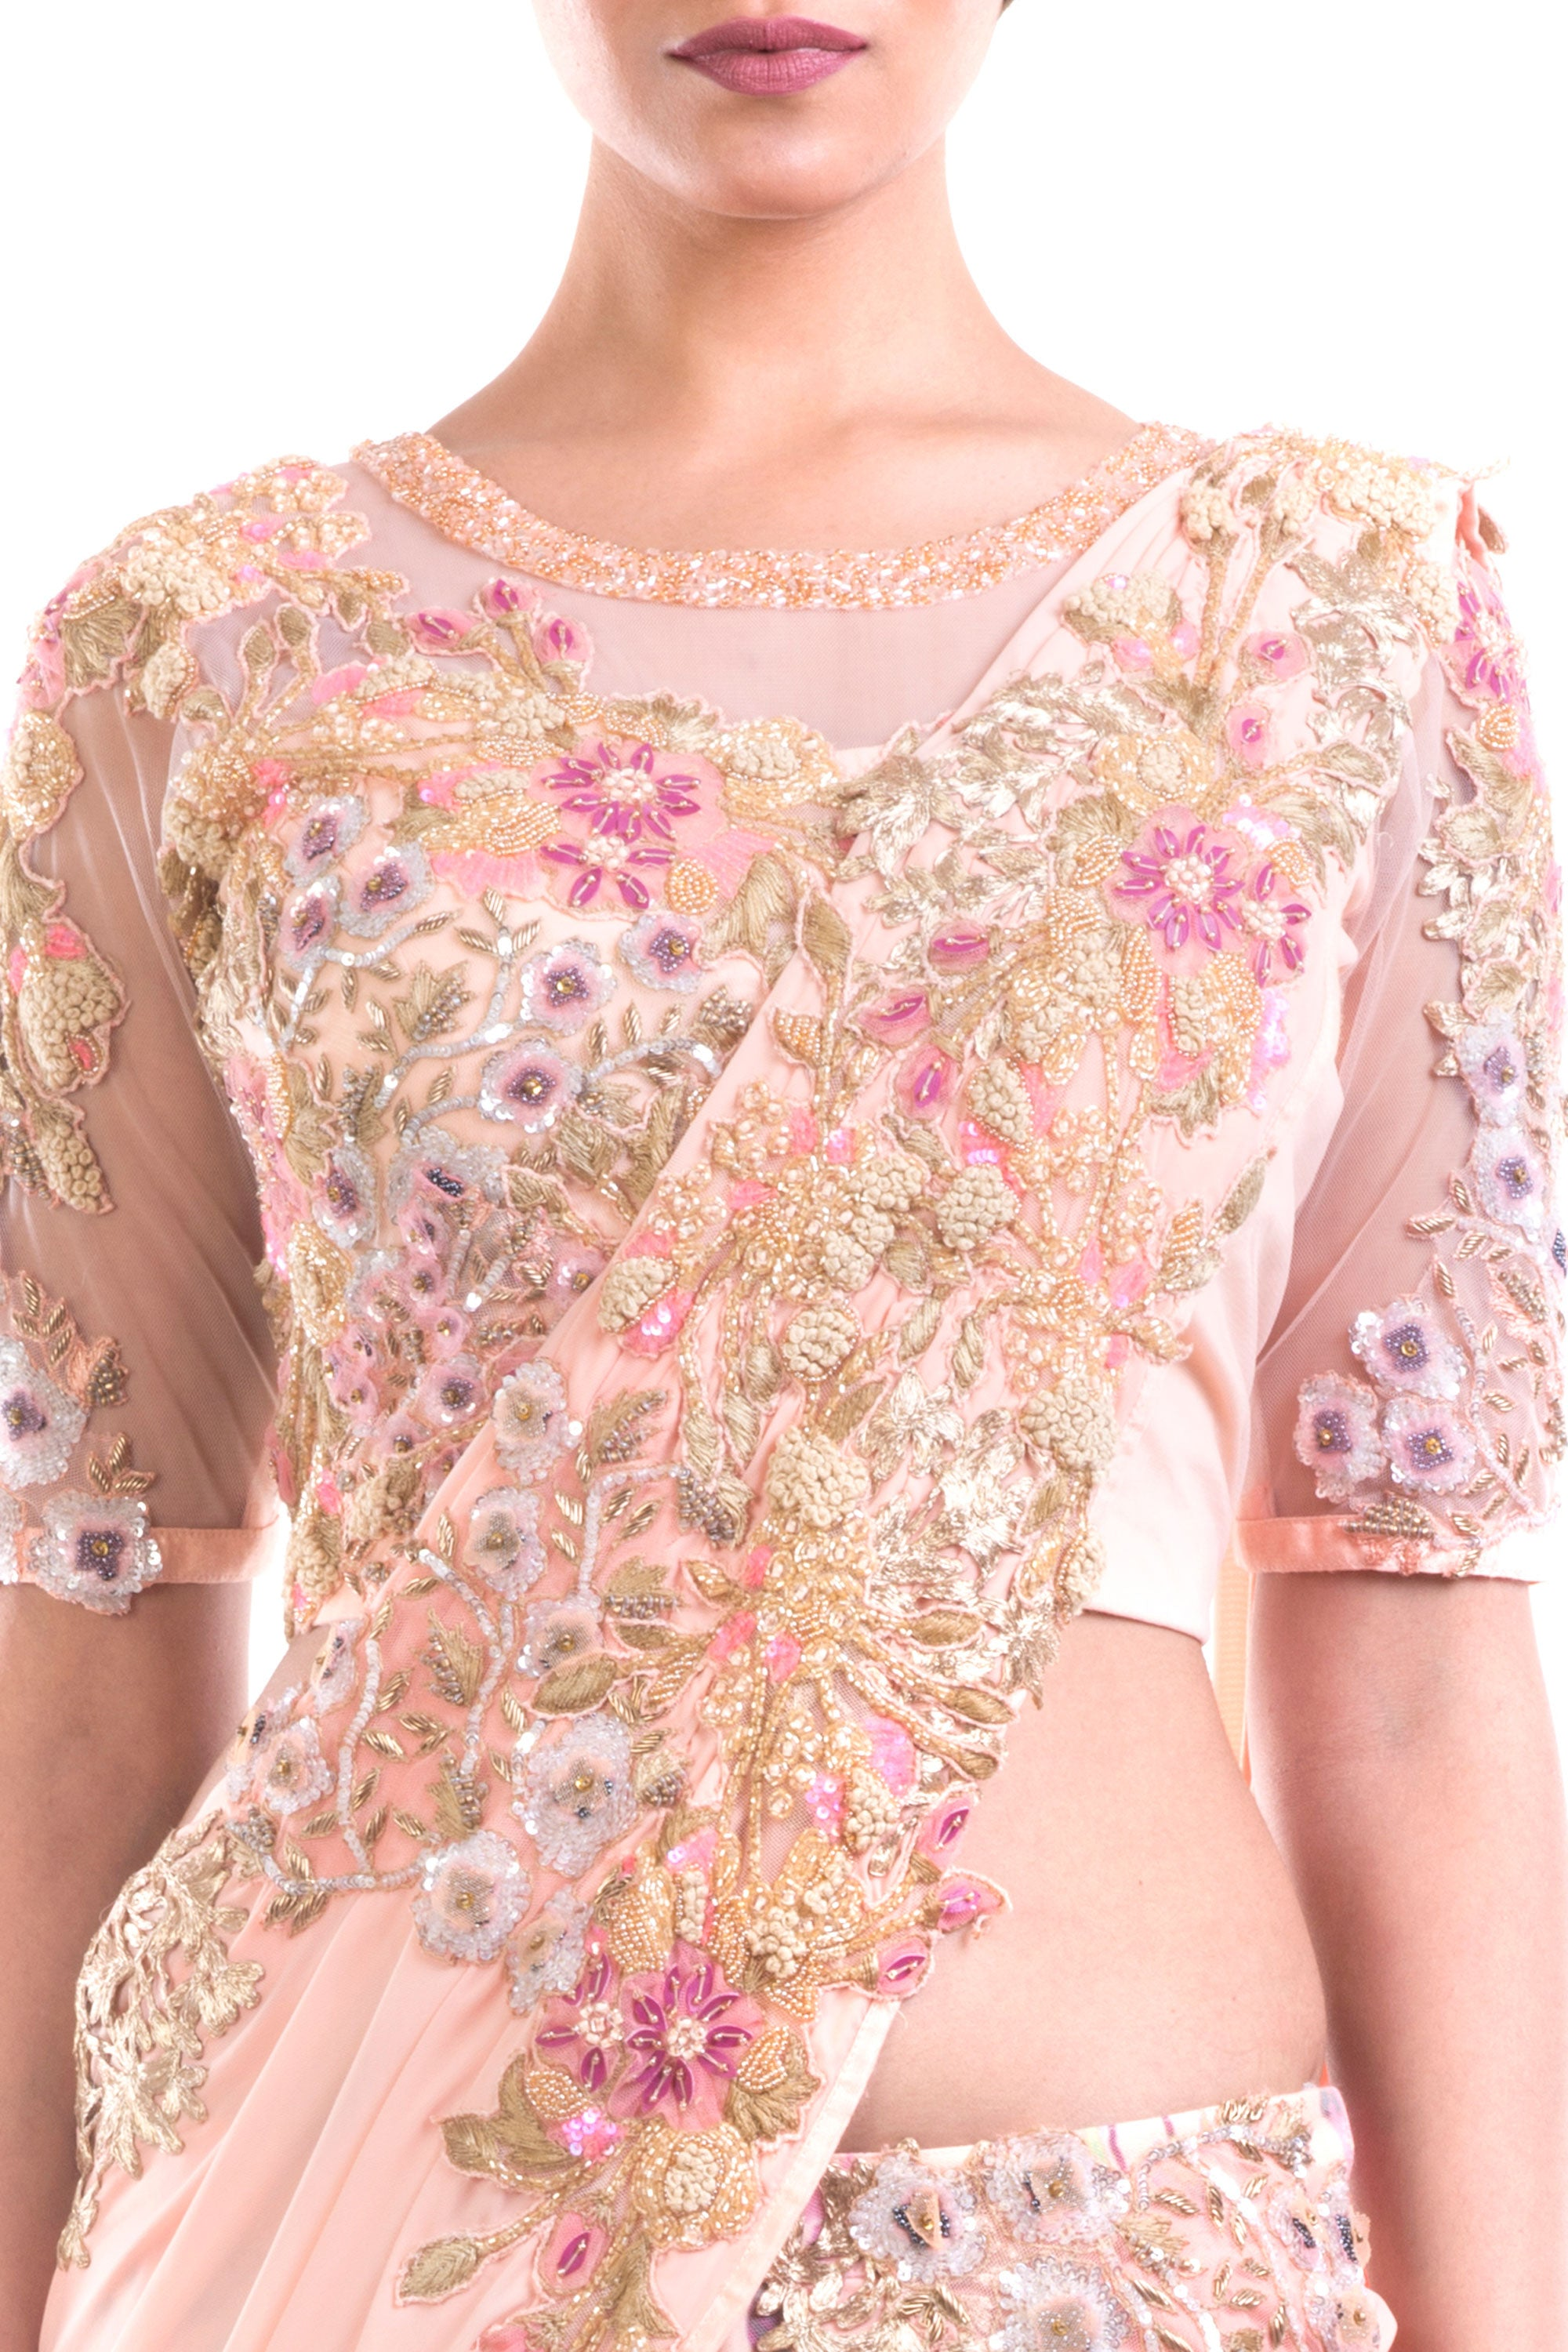 Gorgeous Draped Lehenga Gown Pattern With Print & Intricate Embroidery Detailing Closeup